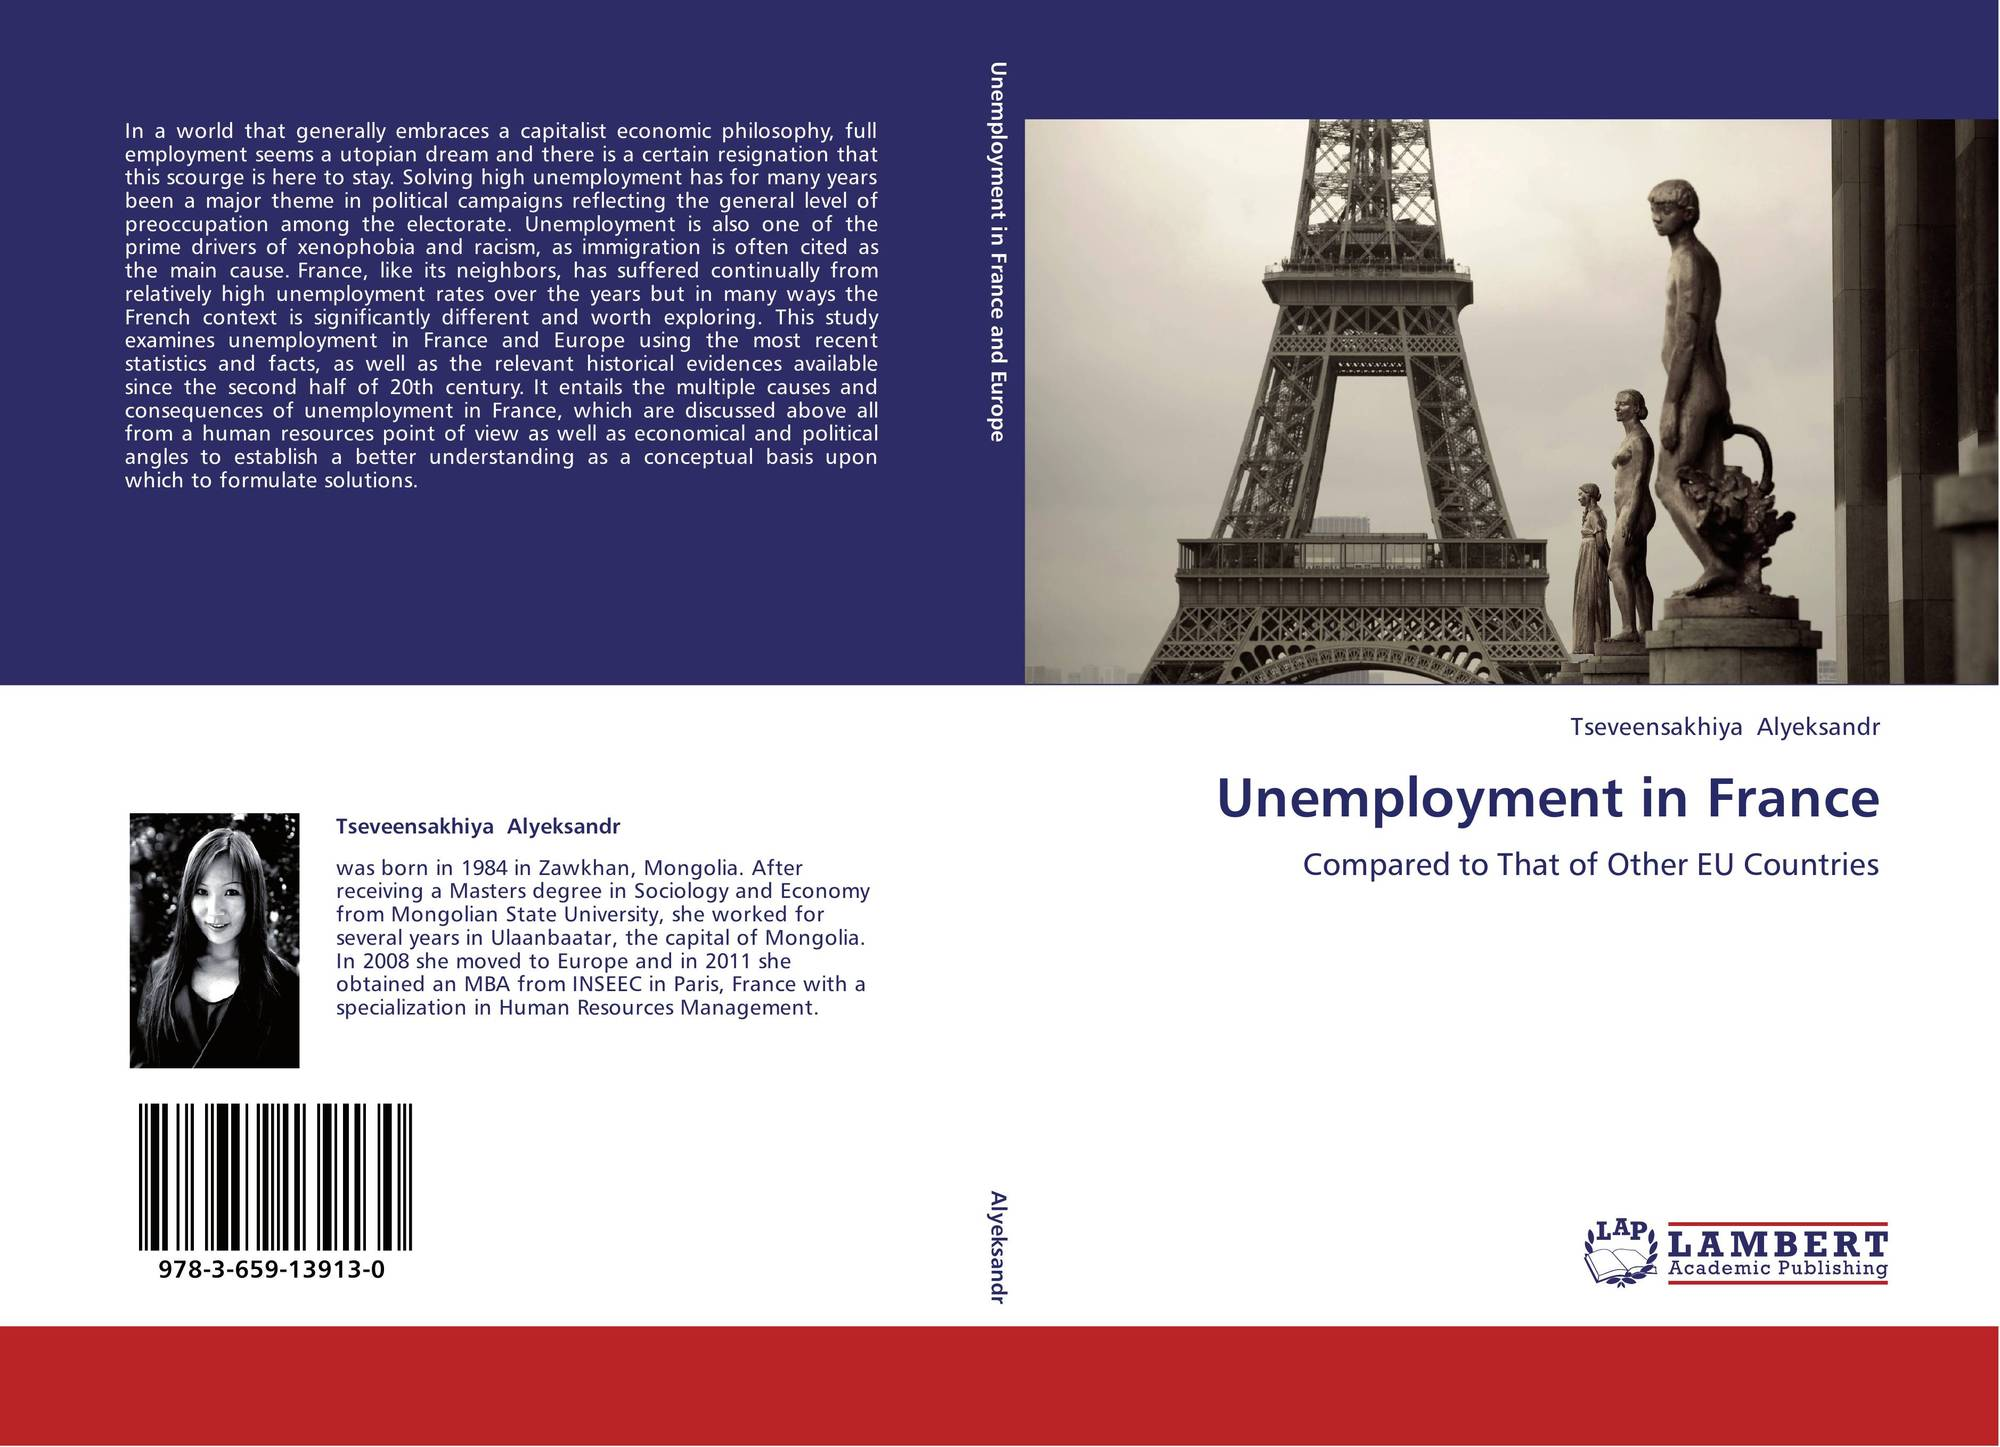 unemployment in france France unemployment rate historical data, charts, stats and more france unemployment rate is at 930%, compared to 920% last month and 950% last year this is higher than the long term average of 928.